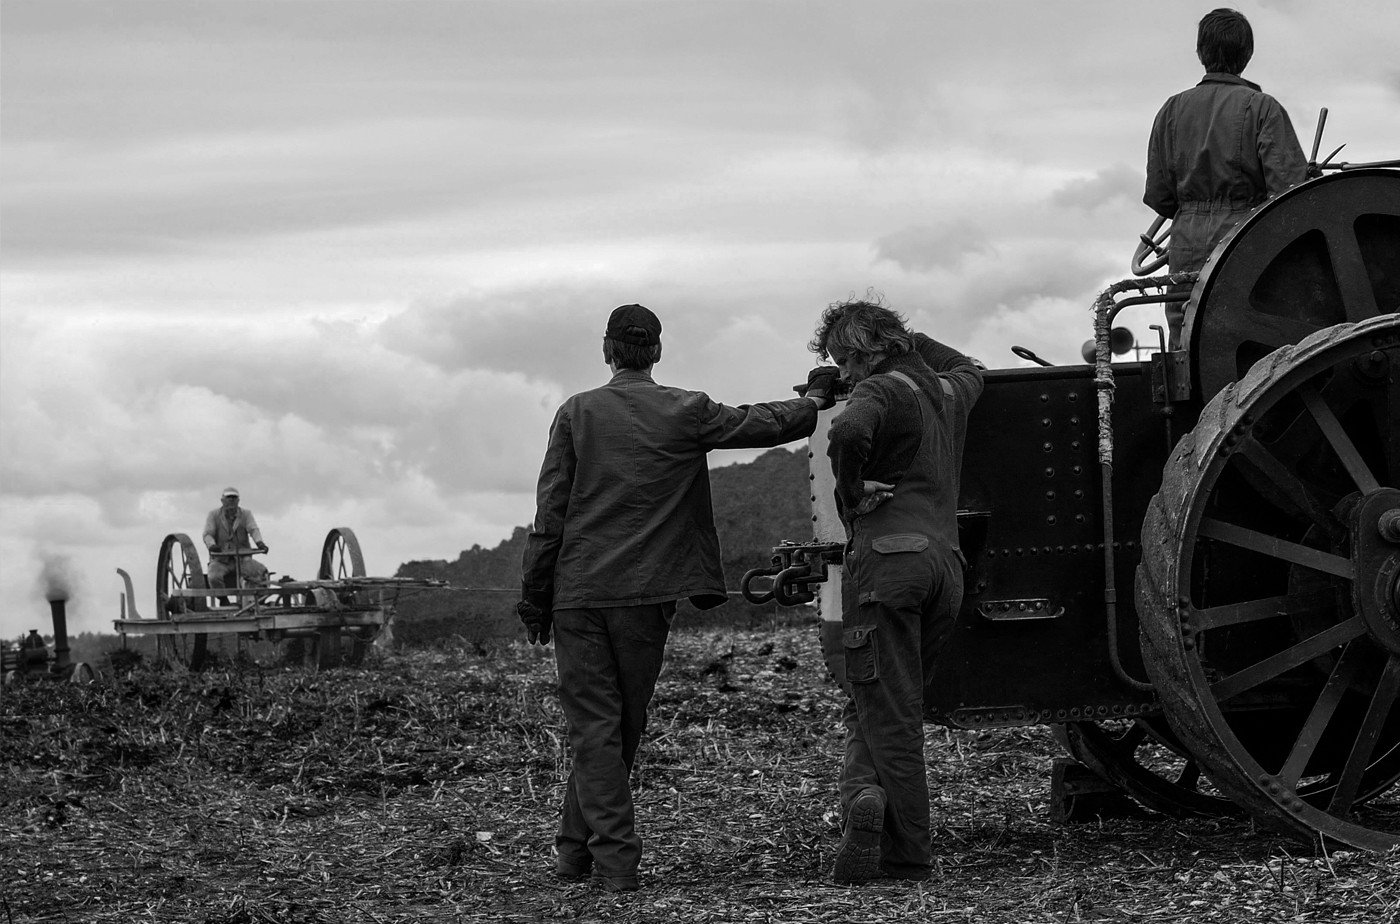 17 WAITING FOR THE PLOUGH by Richard Gandon